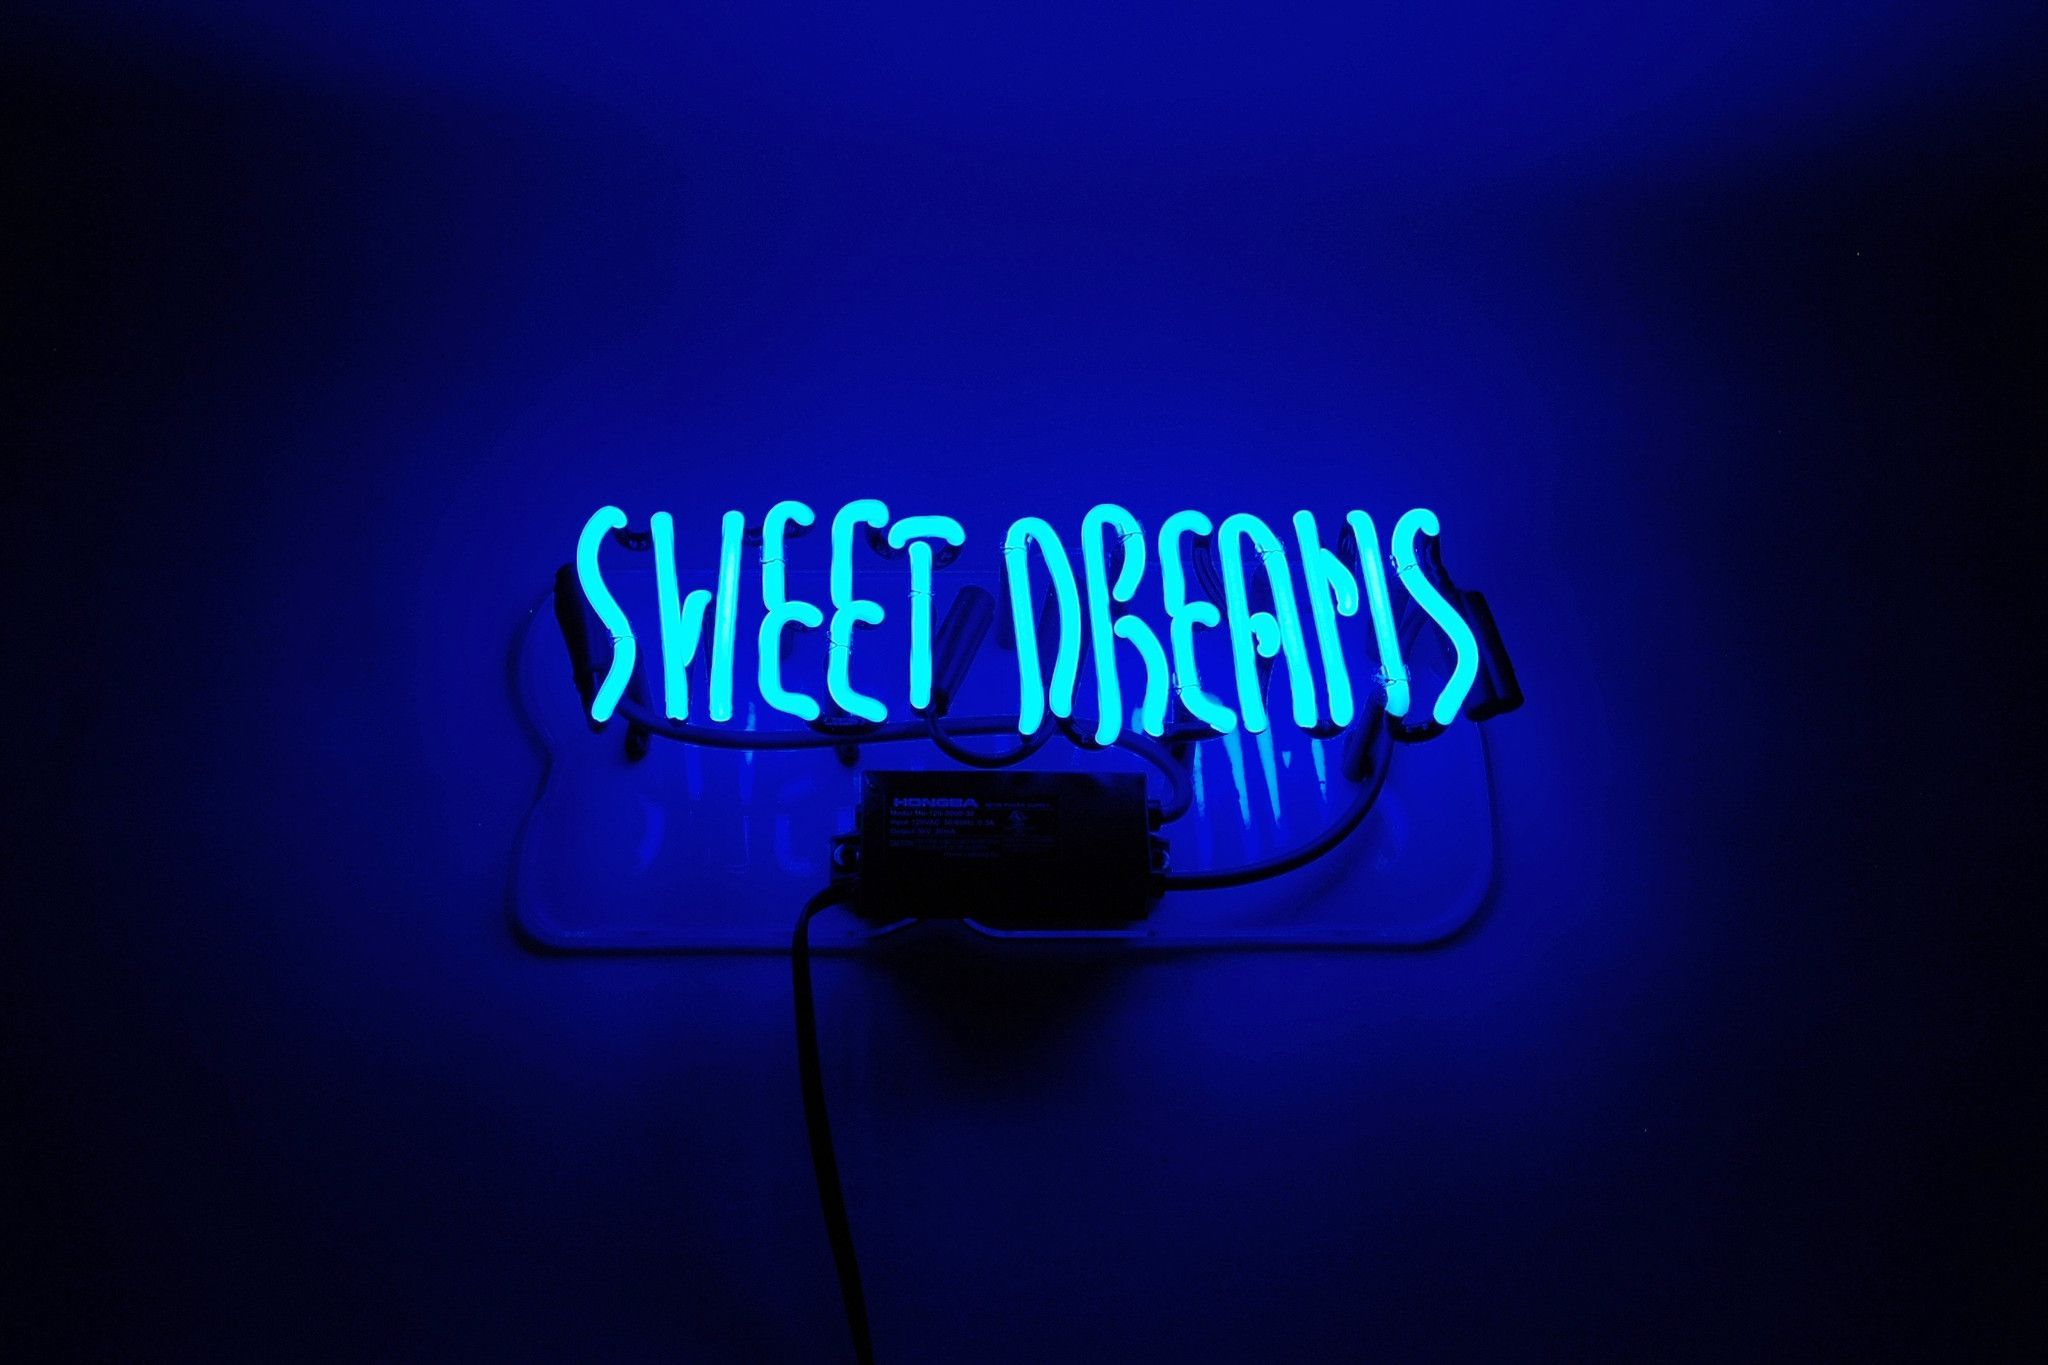 Neon Sign Wallpapers Top Free Neon Sign Backgrounds